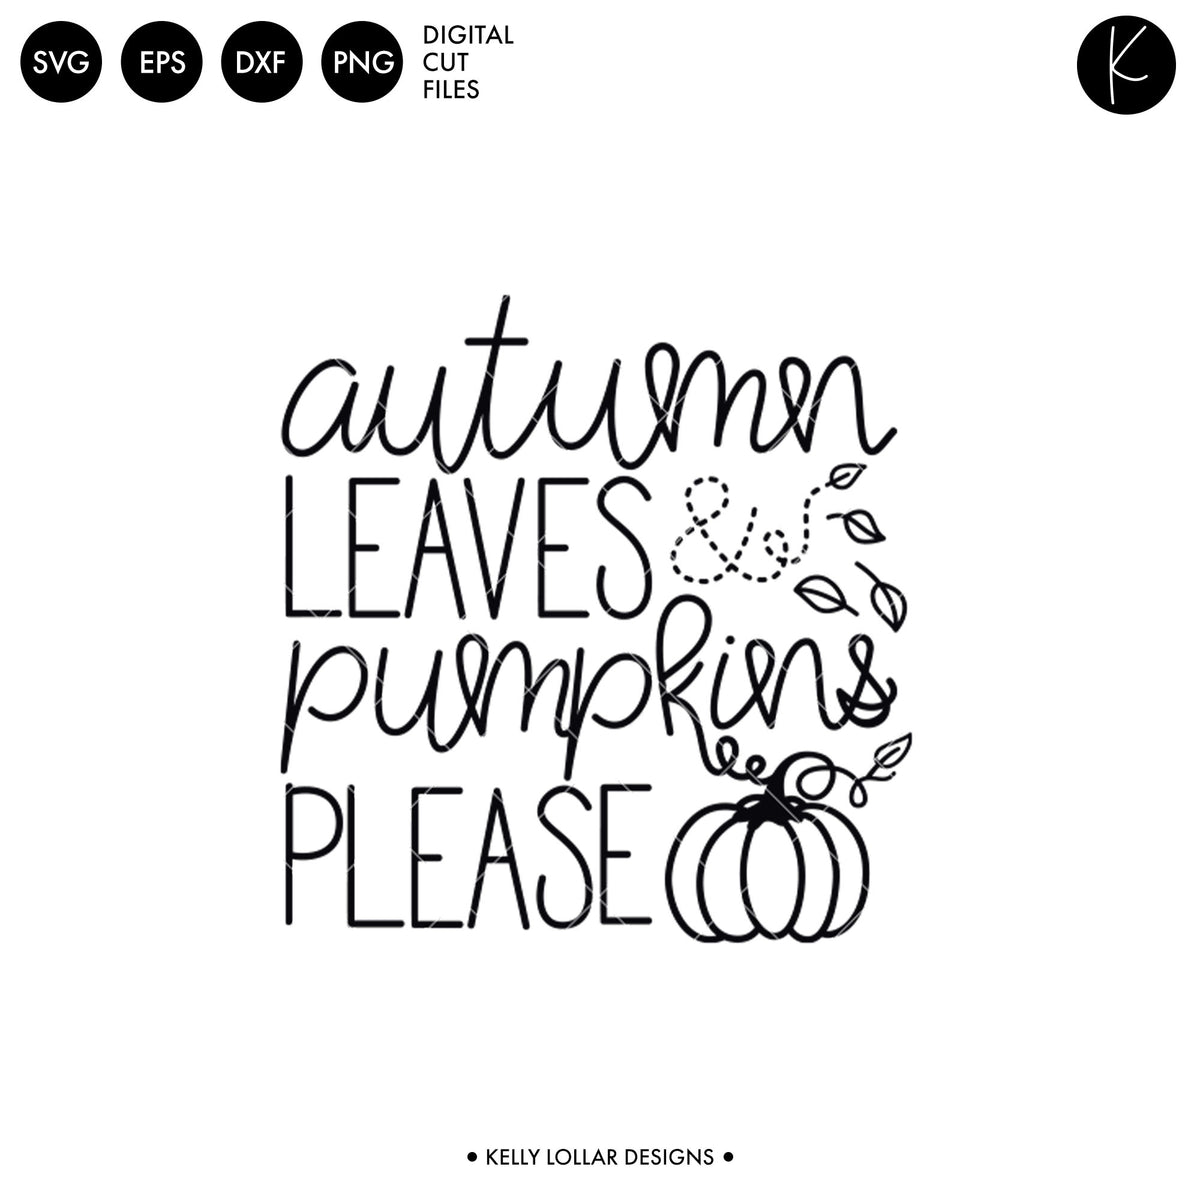 Autumn Leaves and Pumpkins Please | SVG DXF EPS PNG Cut Files